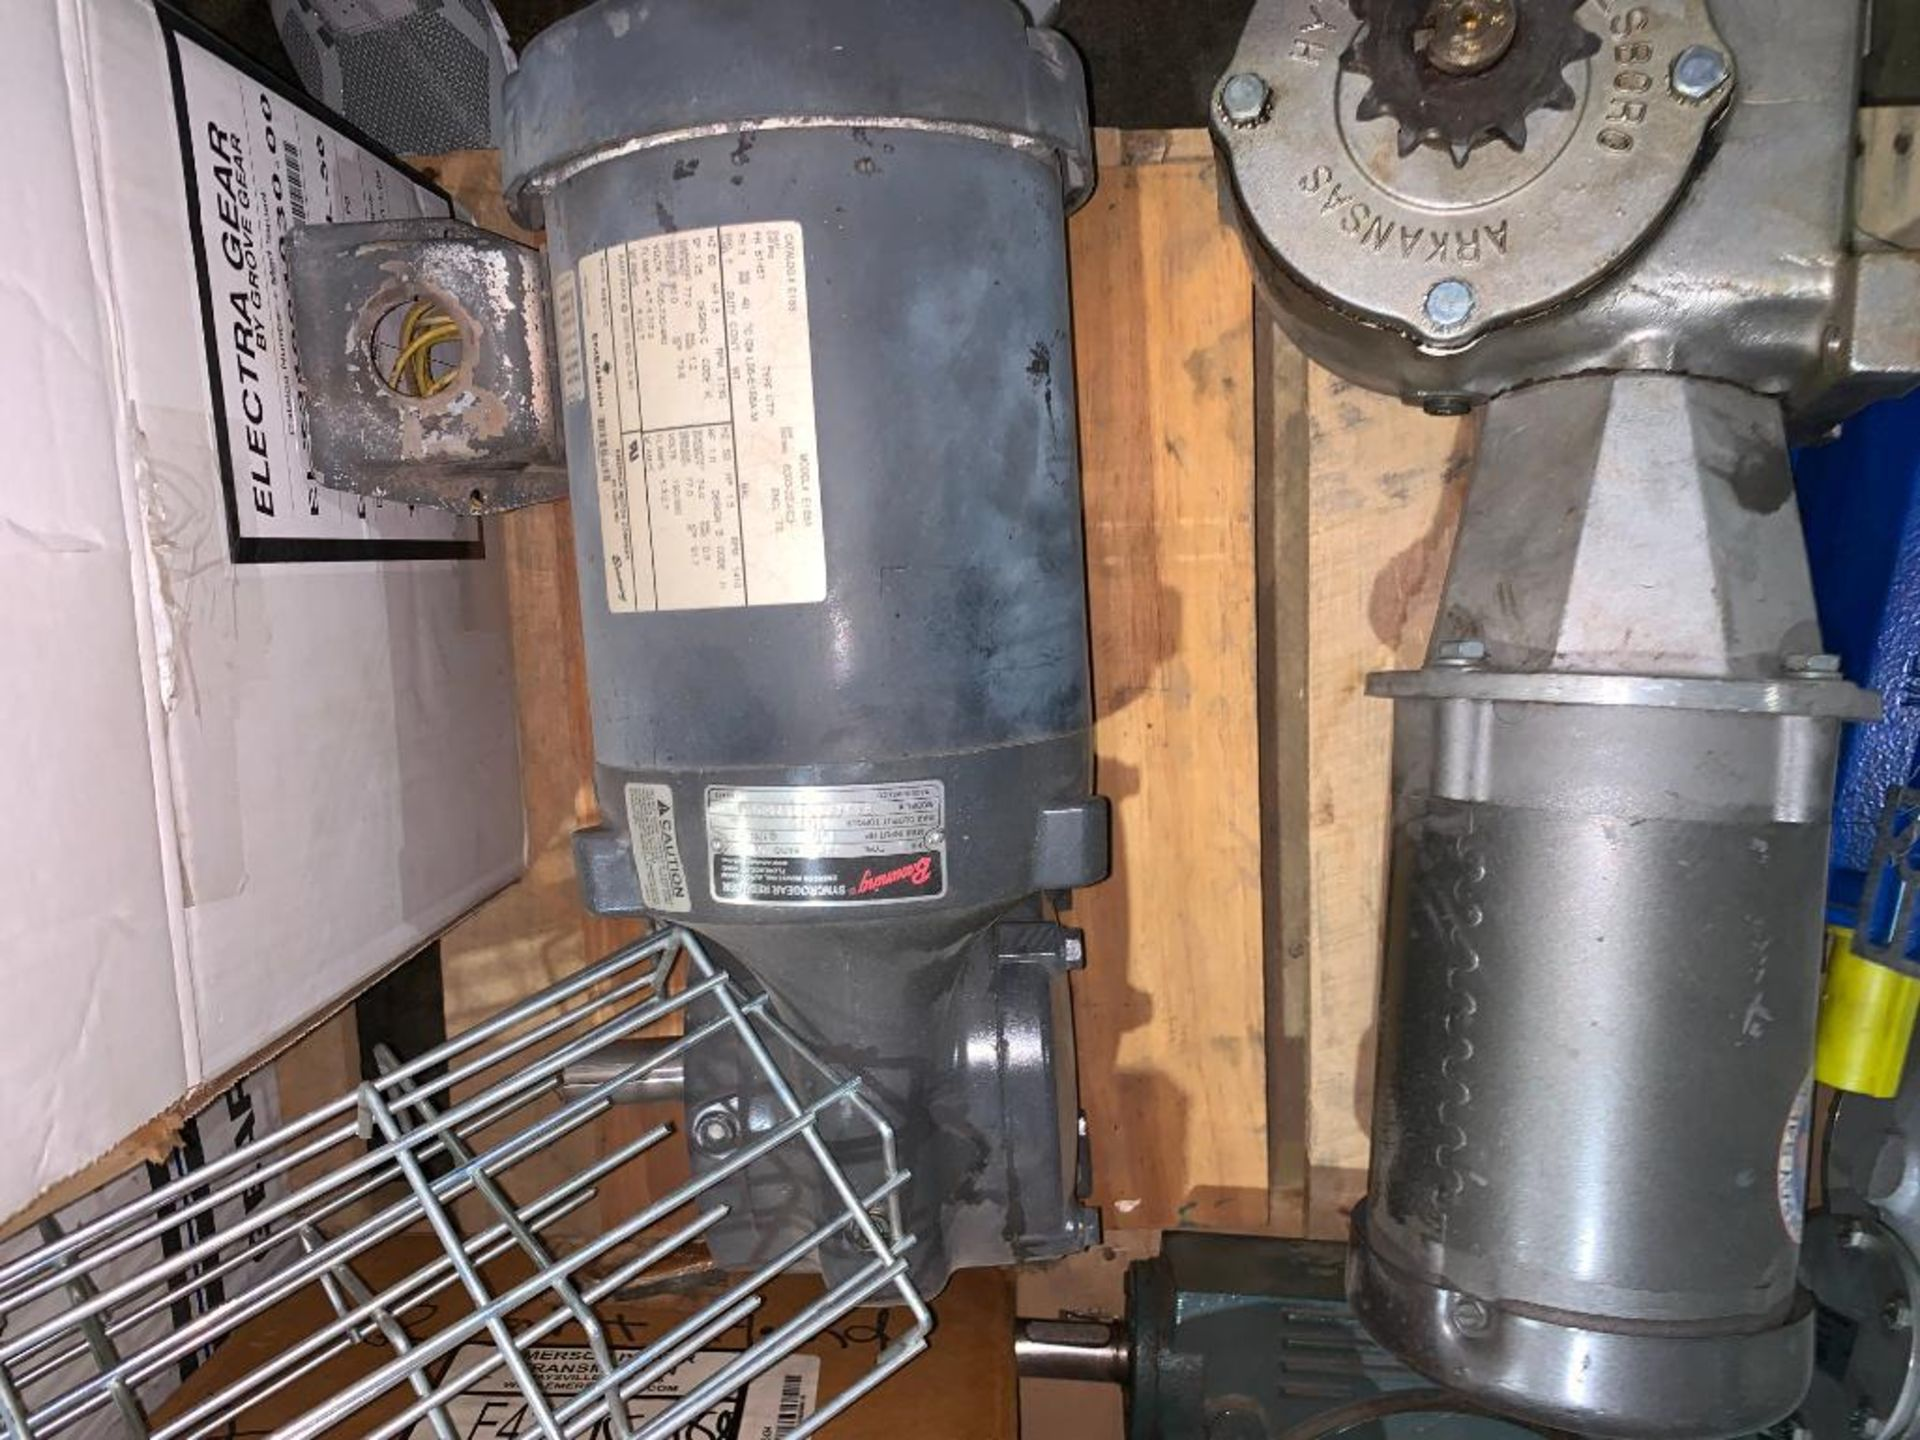 pallet of used motors and drives - Image 7 of 13